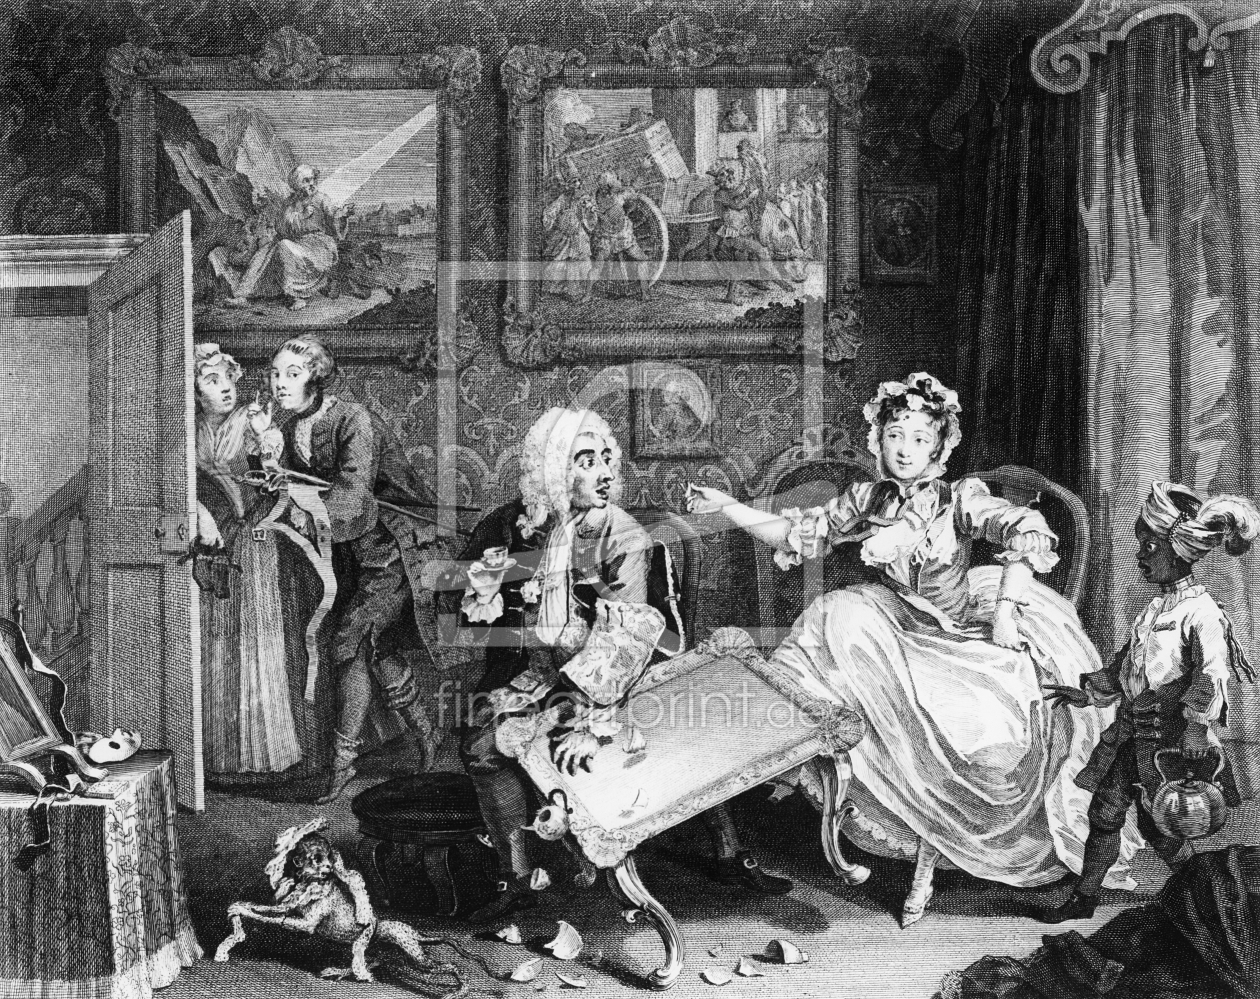 Bild-Nr.: 31000663 A Harlot's Progress, plate II, Quarrels with her Jew Protector erstellt von Hogarth, William